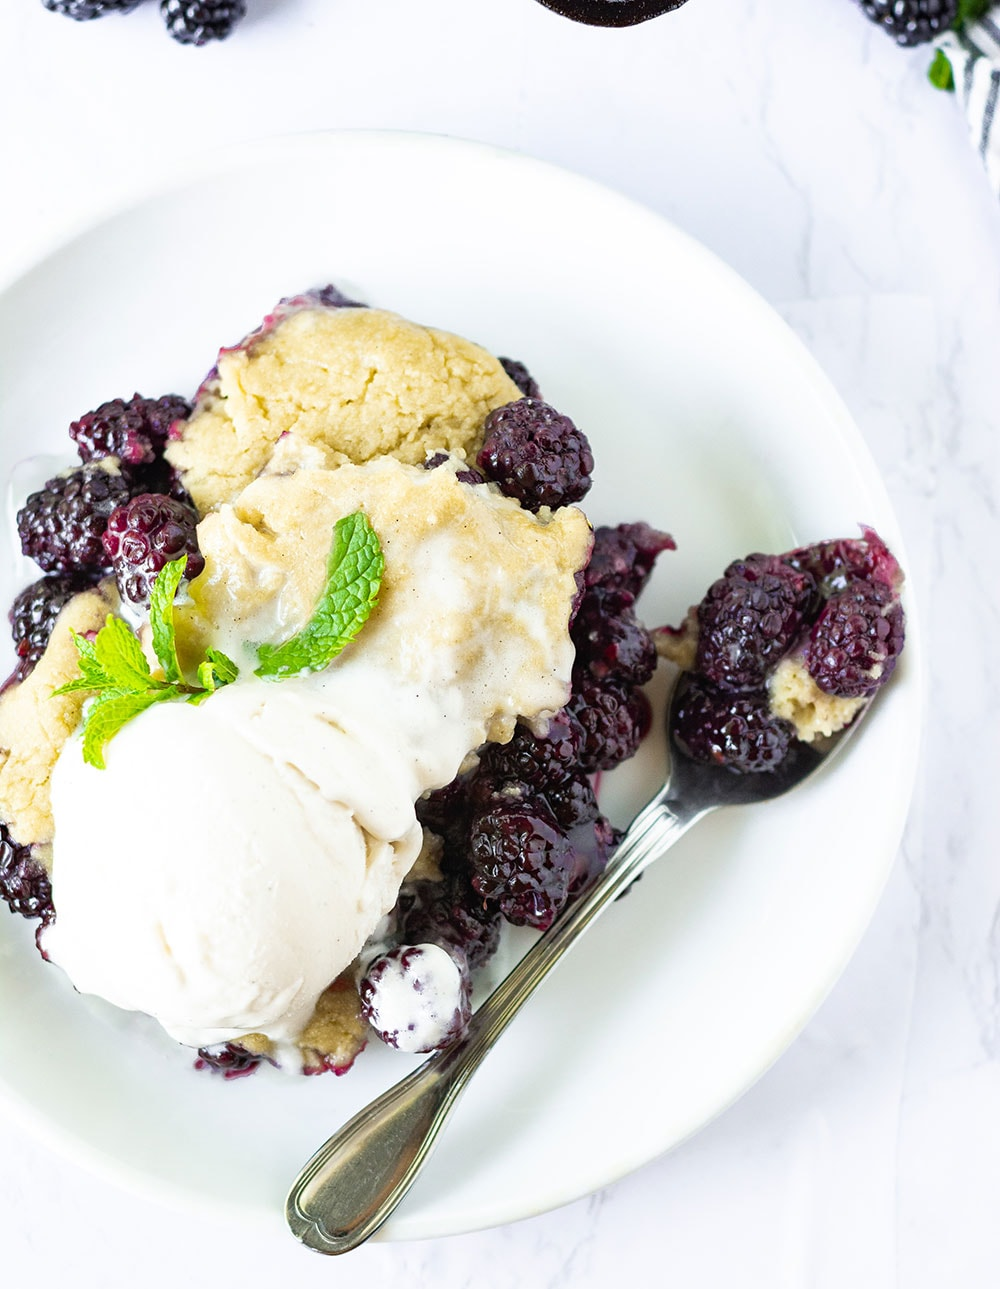 overlay vegan blackberry cobbler on a white plate with a scoop of vegan vanilla ice cream and mint leaf garnish with a silver spoon with cobbler on a white background